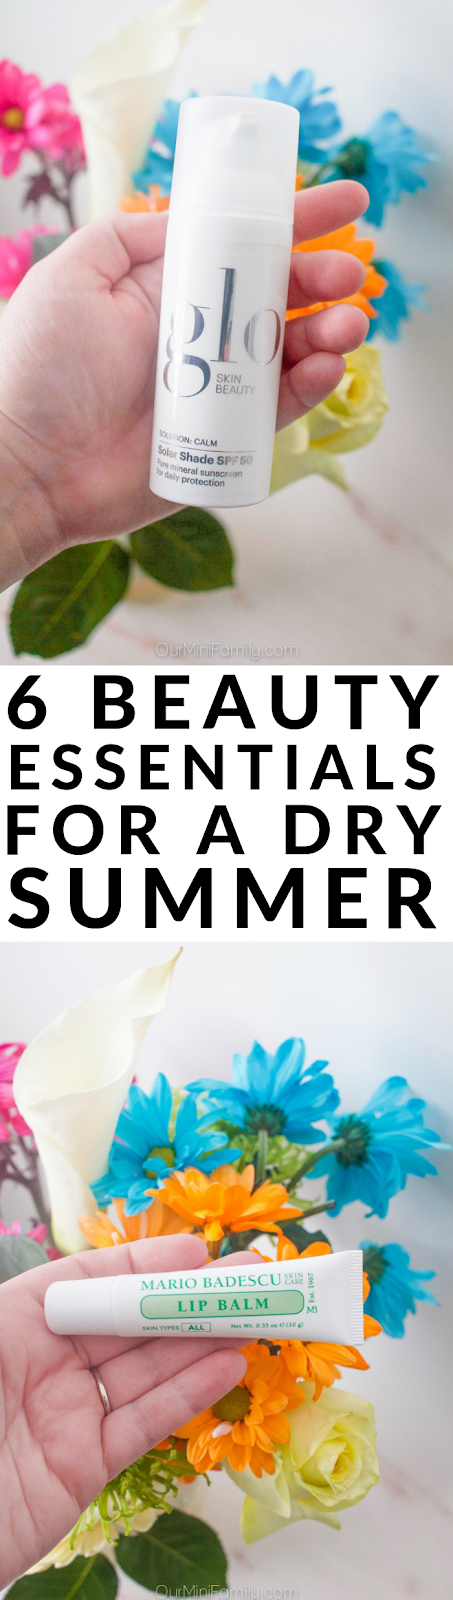 6 Beauty Essentials for a Dry Summer